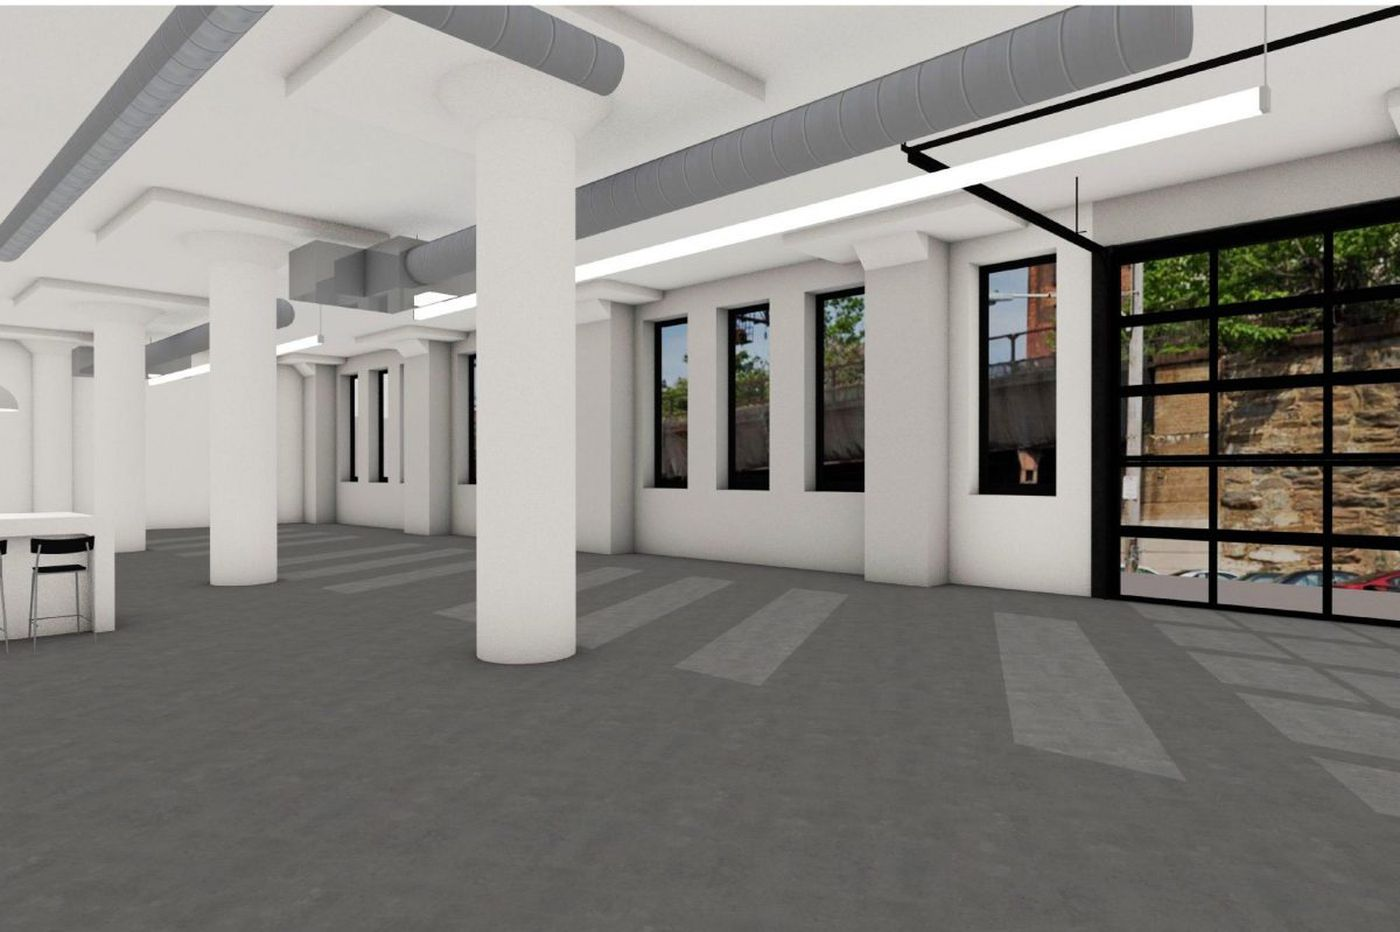 Photo studio and event space planned in emerging Philly business enclave